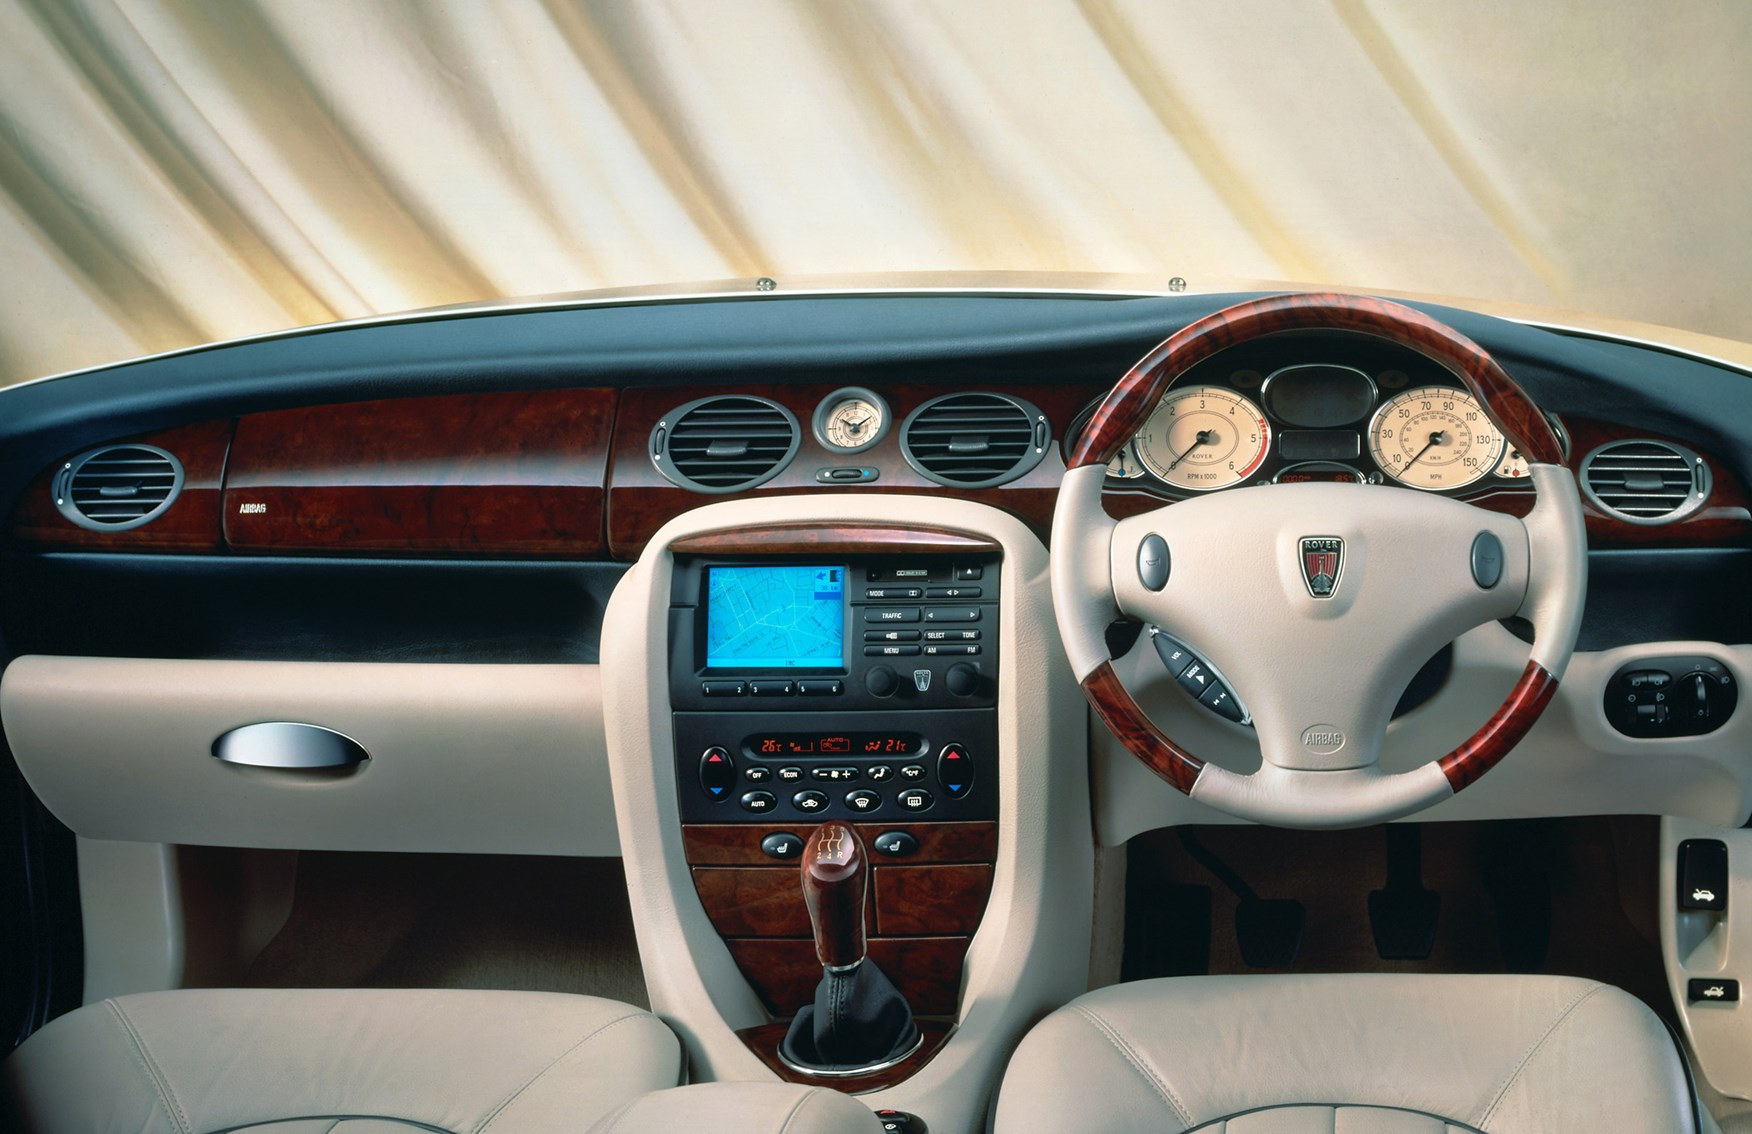 Rover 75 Tourer (2001 - 2004) Features, Equipment and Accessories ...